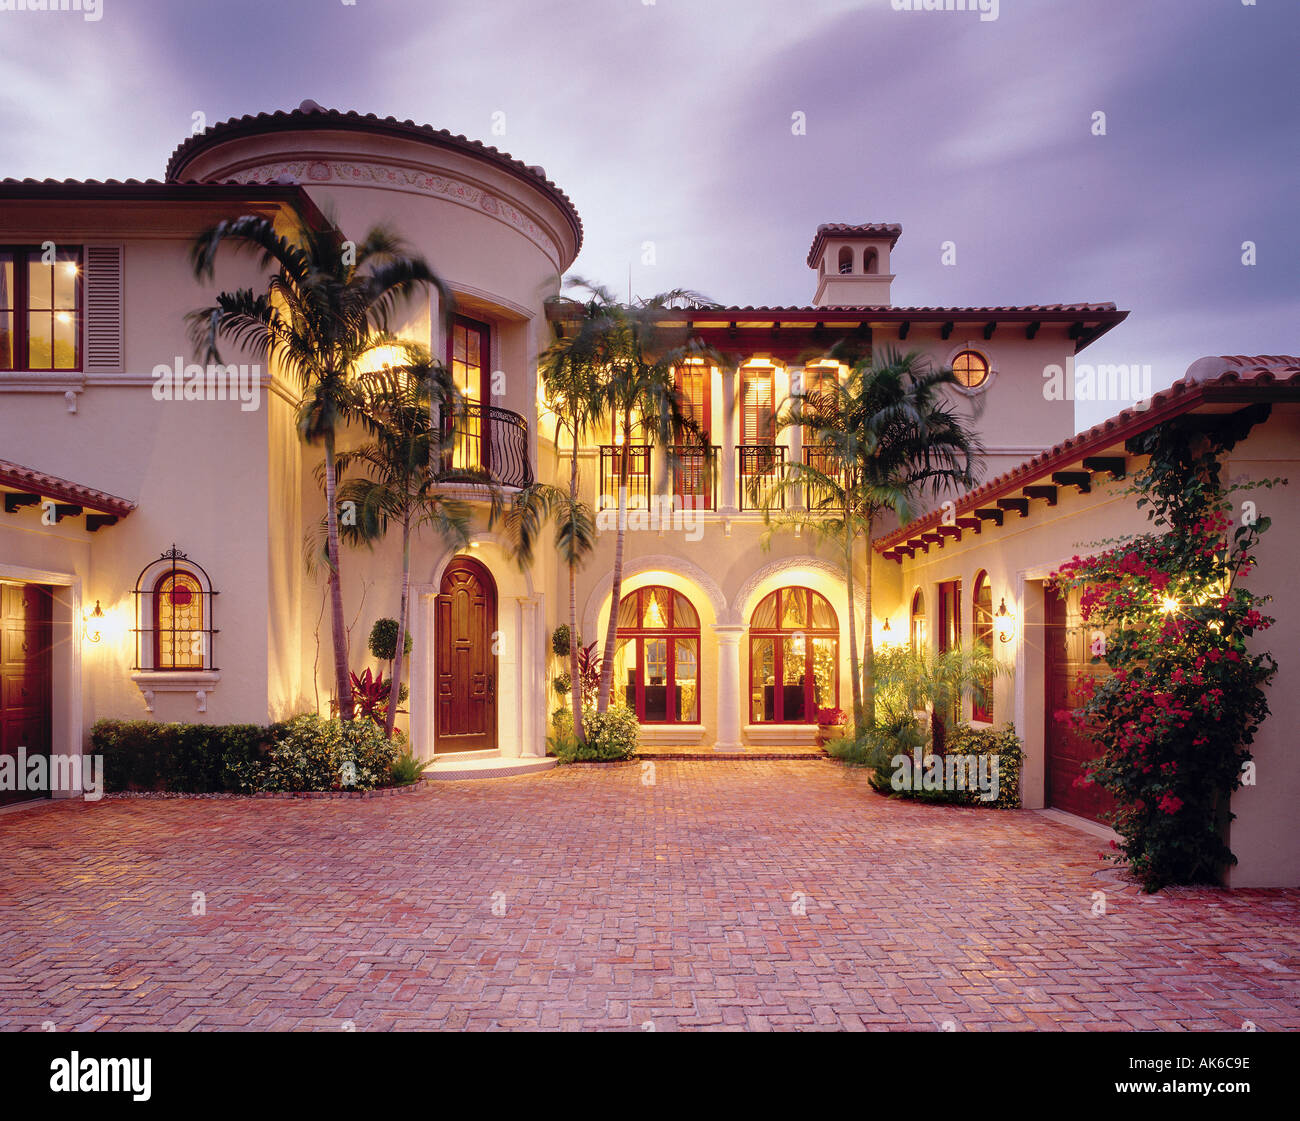 Mediterranean Style Homes In Florida: Mediterranean Single Family Home With Brick Courtyard In